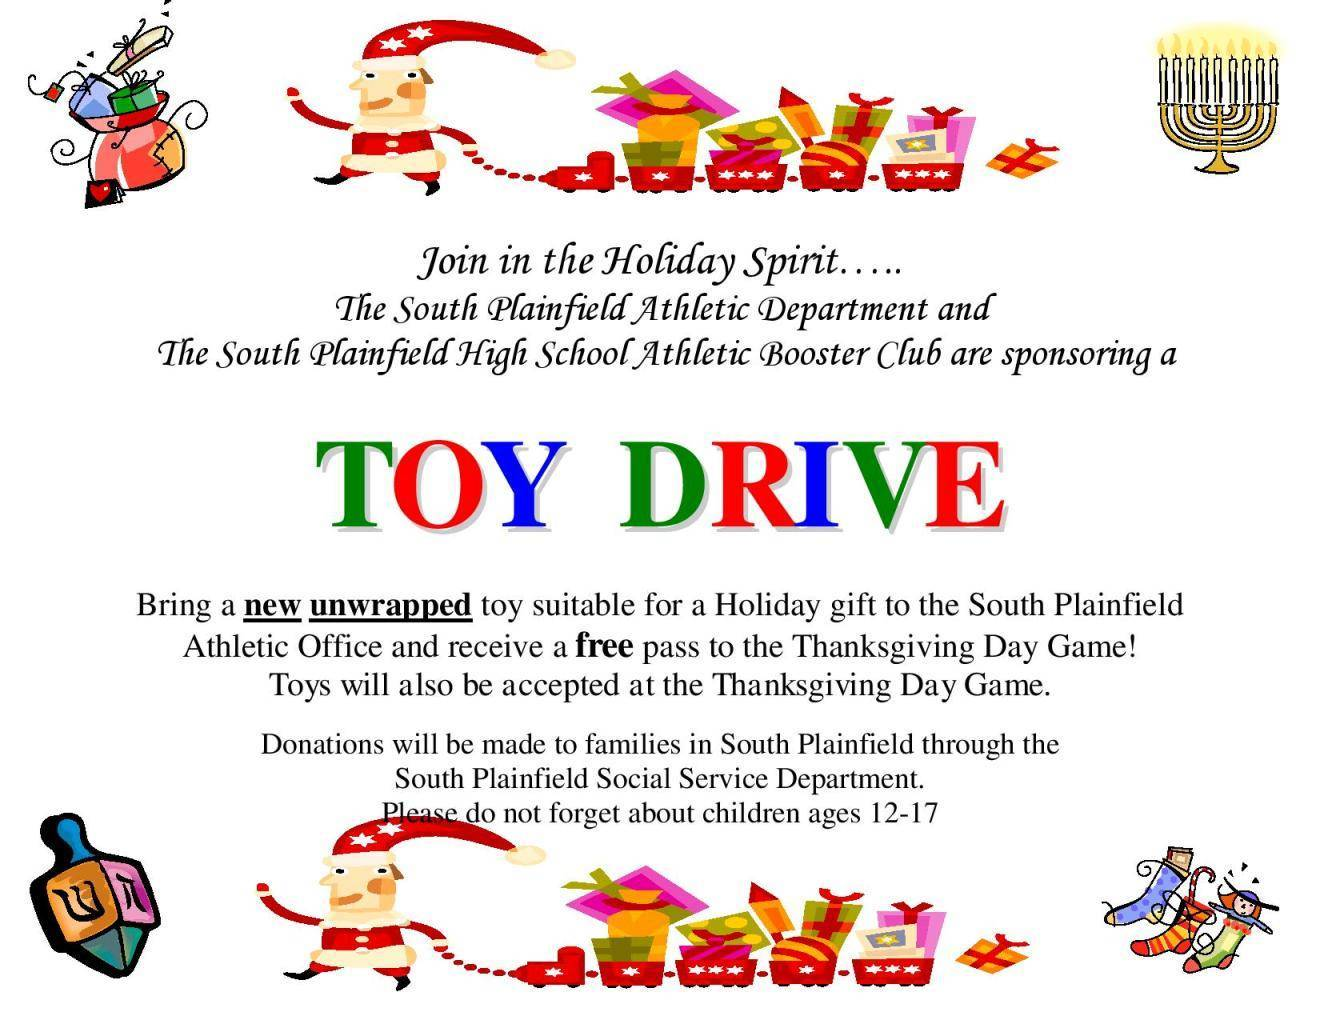 Sample Letters Toys For Tots : Toy drive south plainfield athletic department booster